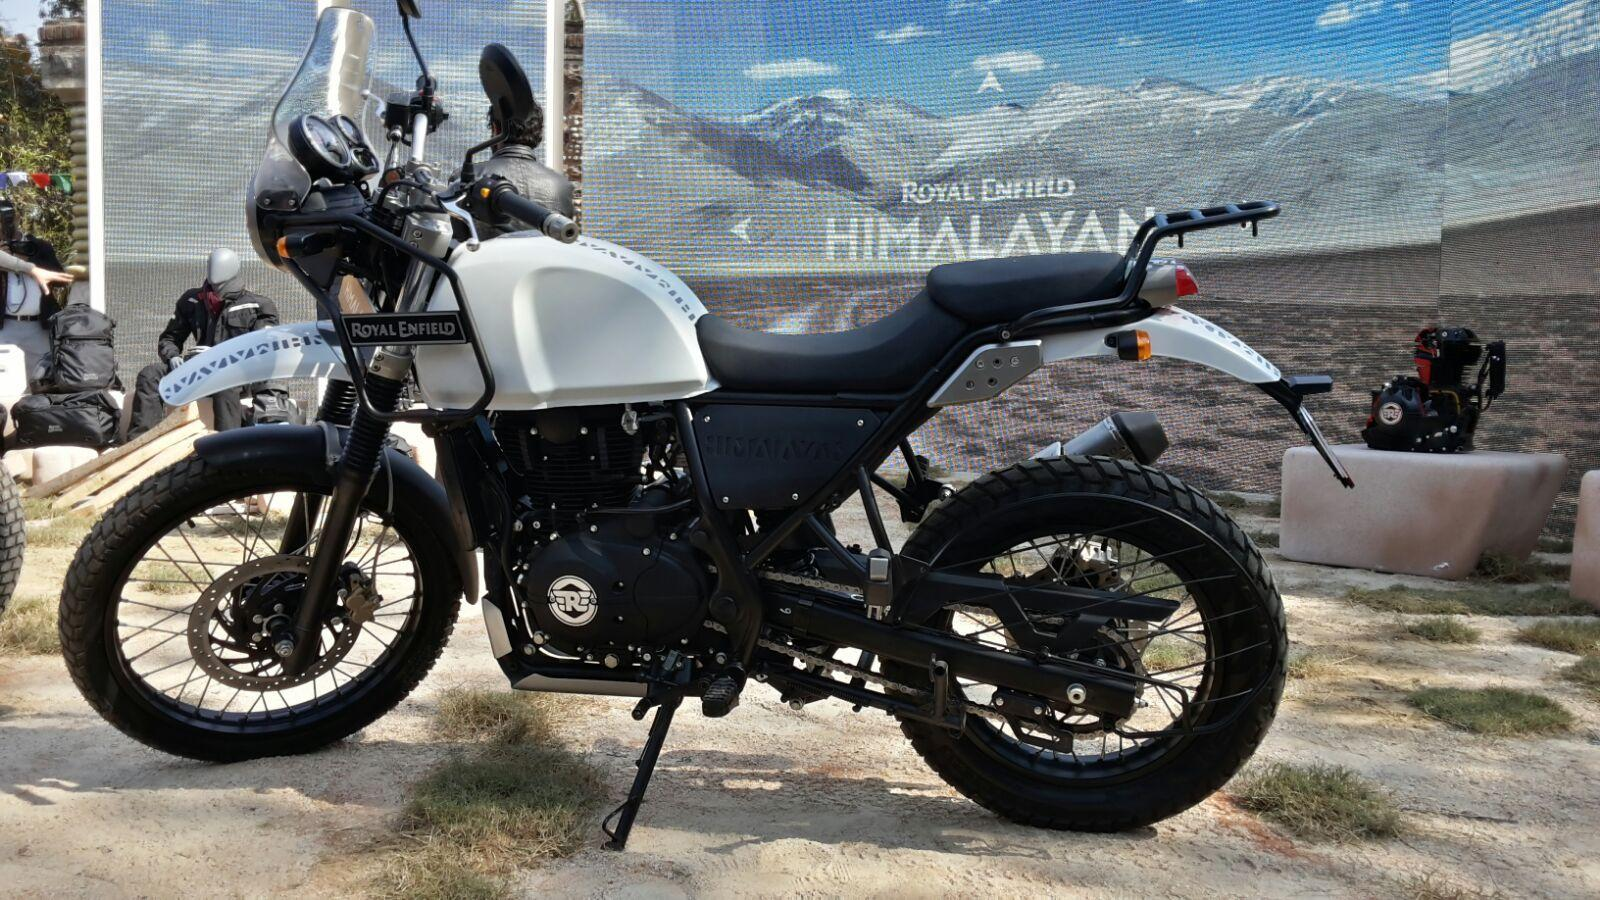 Royal Enfield Himalayan Wallpapers Wallpaper Cave